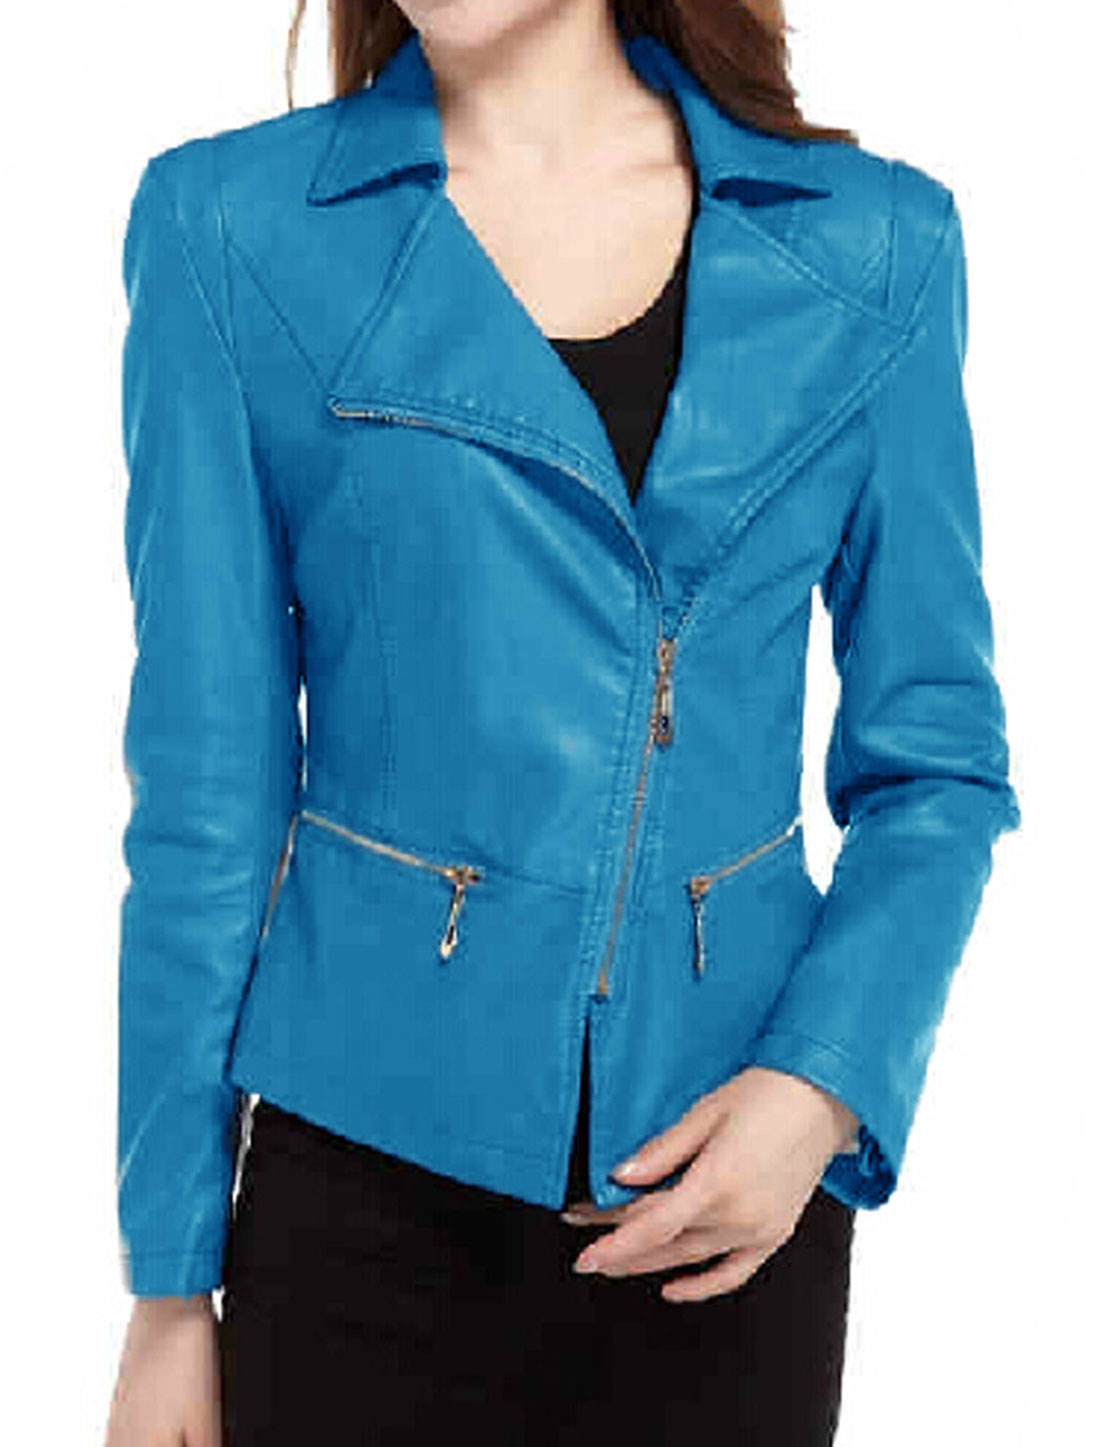 Ladies Turquoise Long Sleeves Turn Down Collar Inclined Zippered Front Jacket L